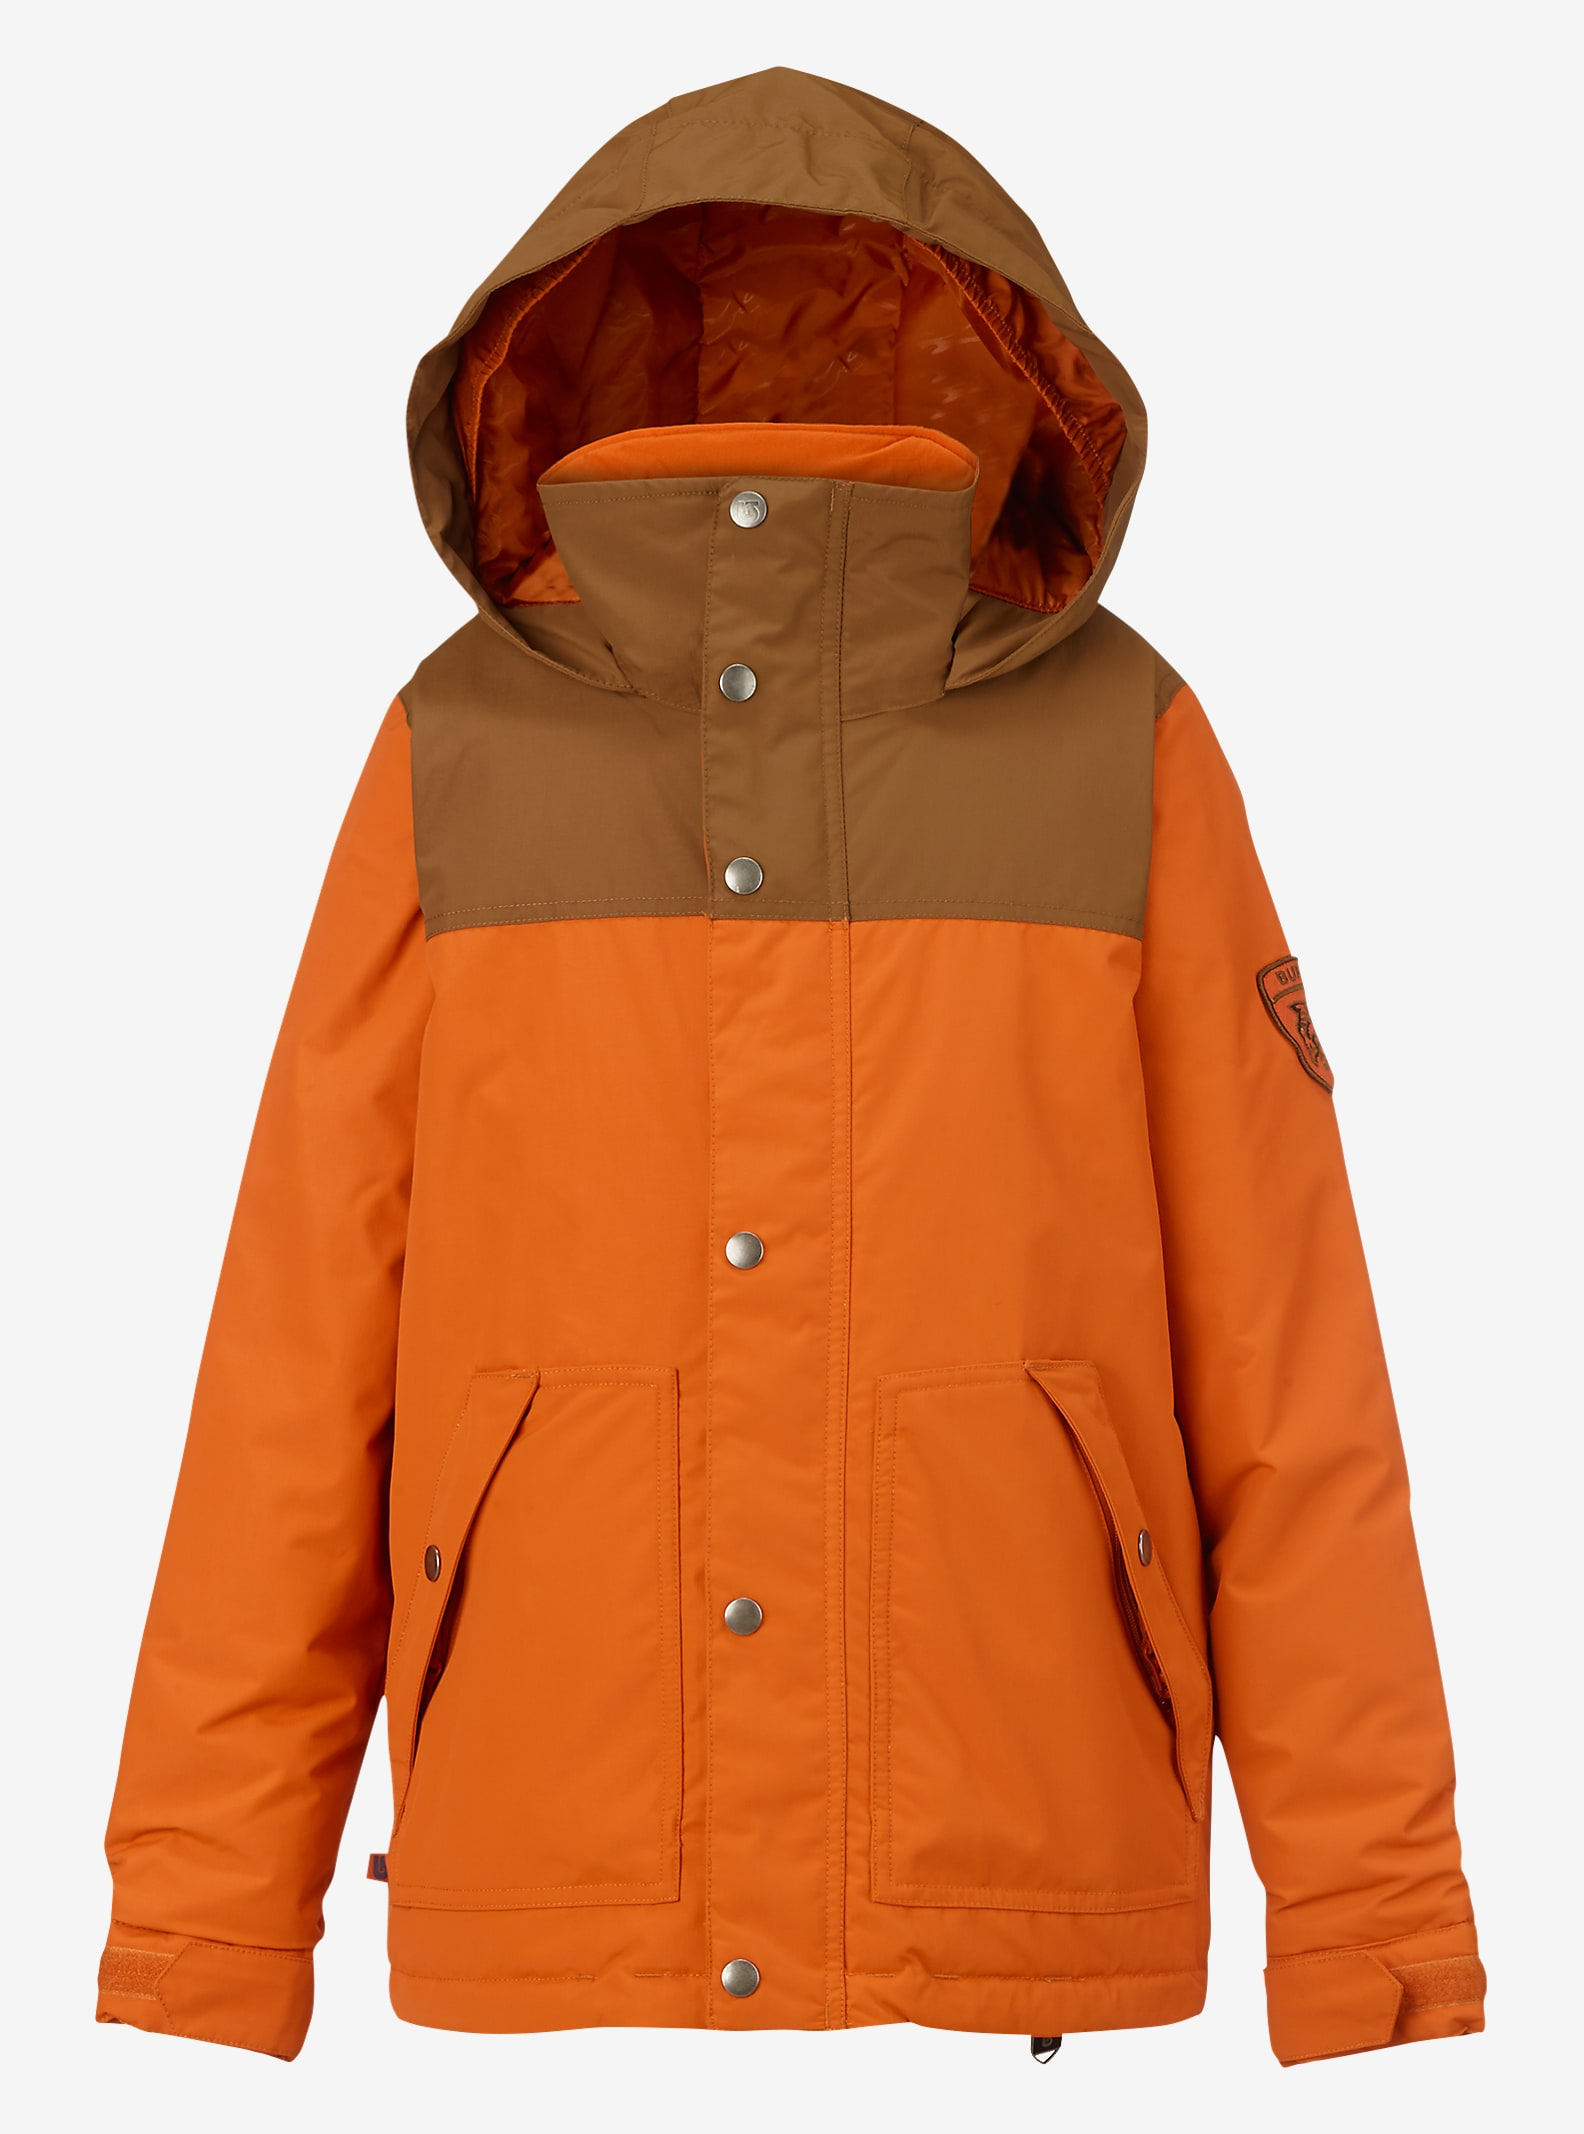 Burton Boys' Fray Jacket shown in Maui Sunset / Beaver Tail